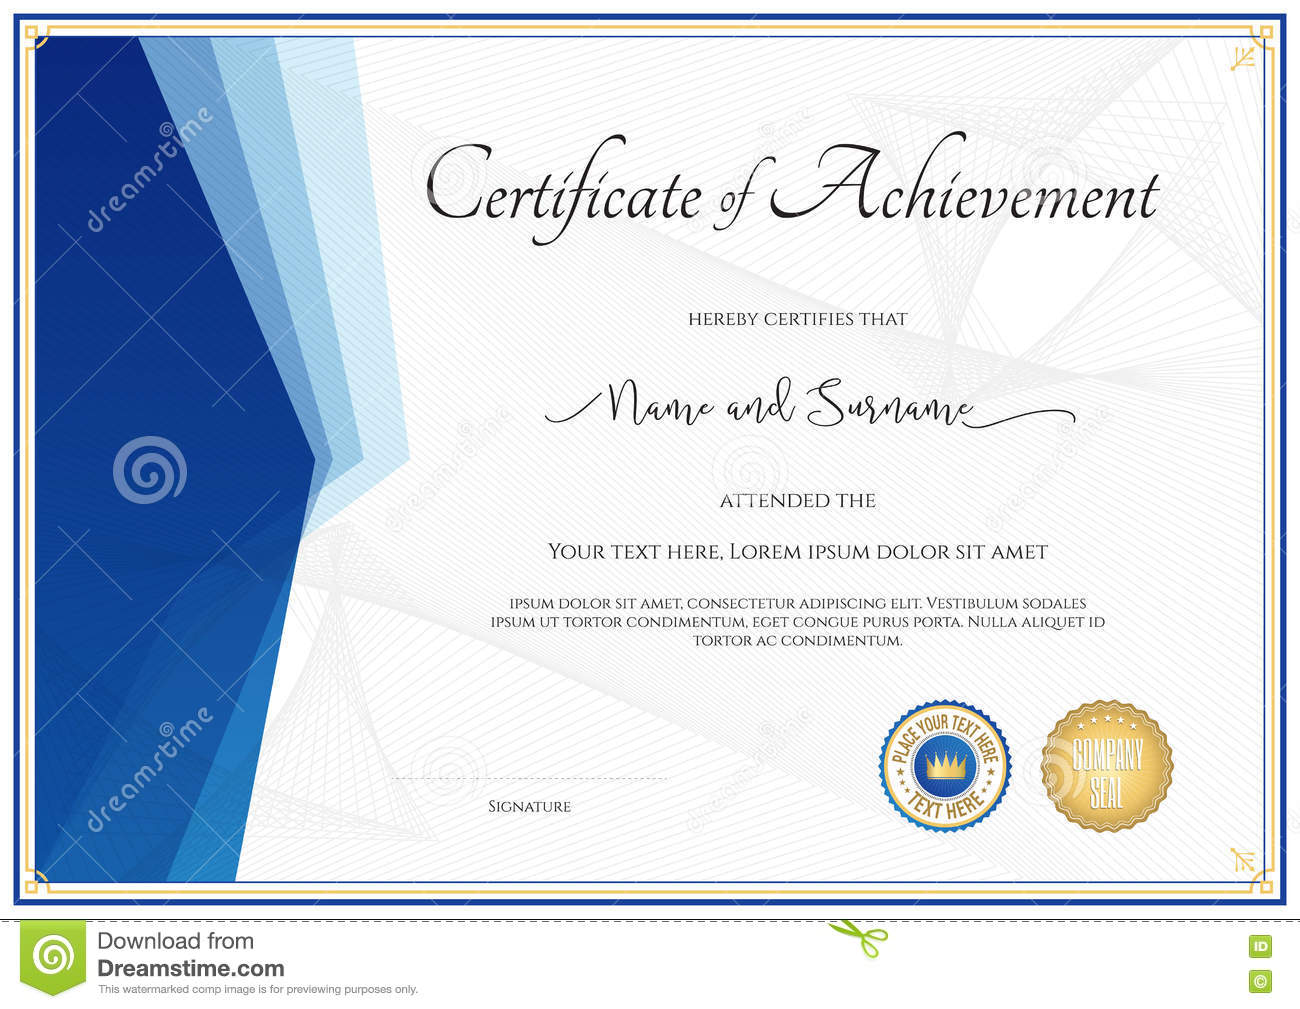 Modern certificate template for achievement appreciation parti modern certificate template for achievement appreciation parti xflitez Choice Image